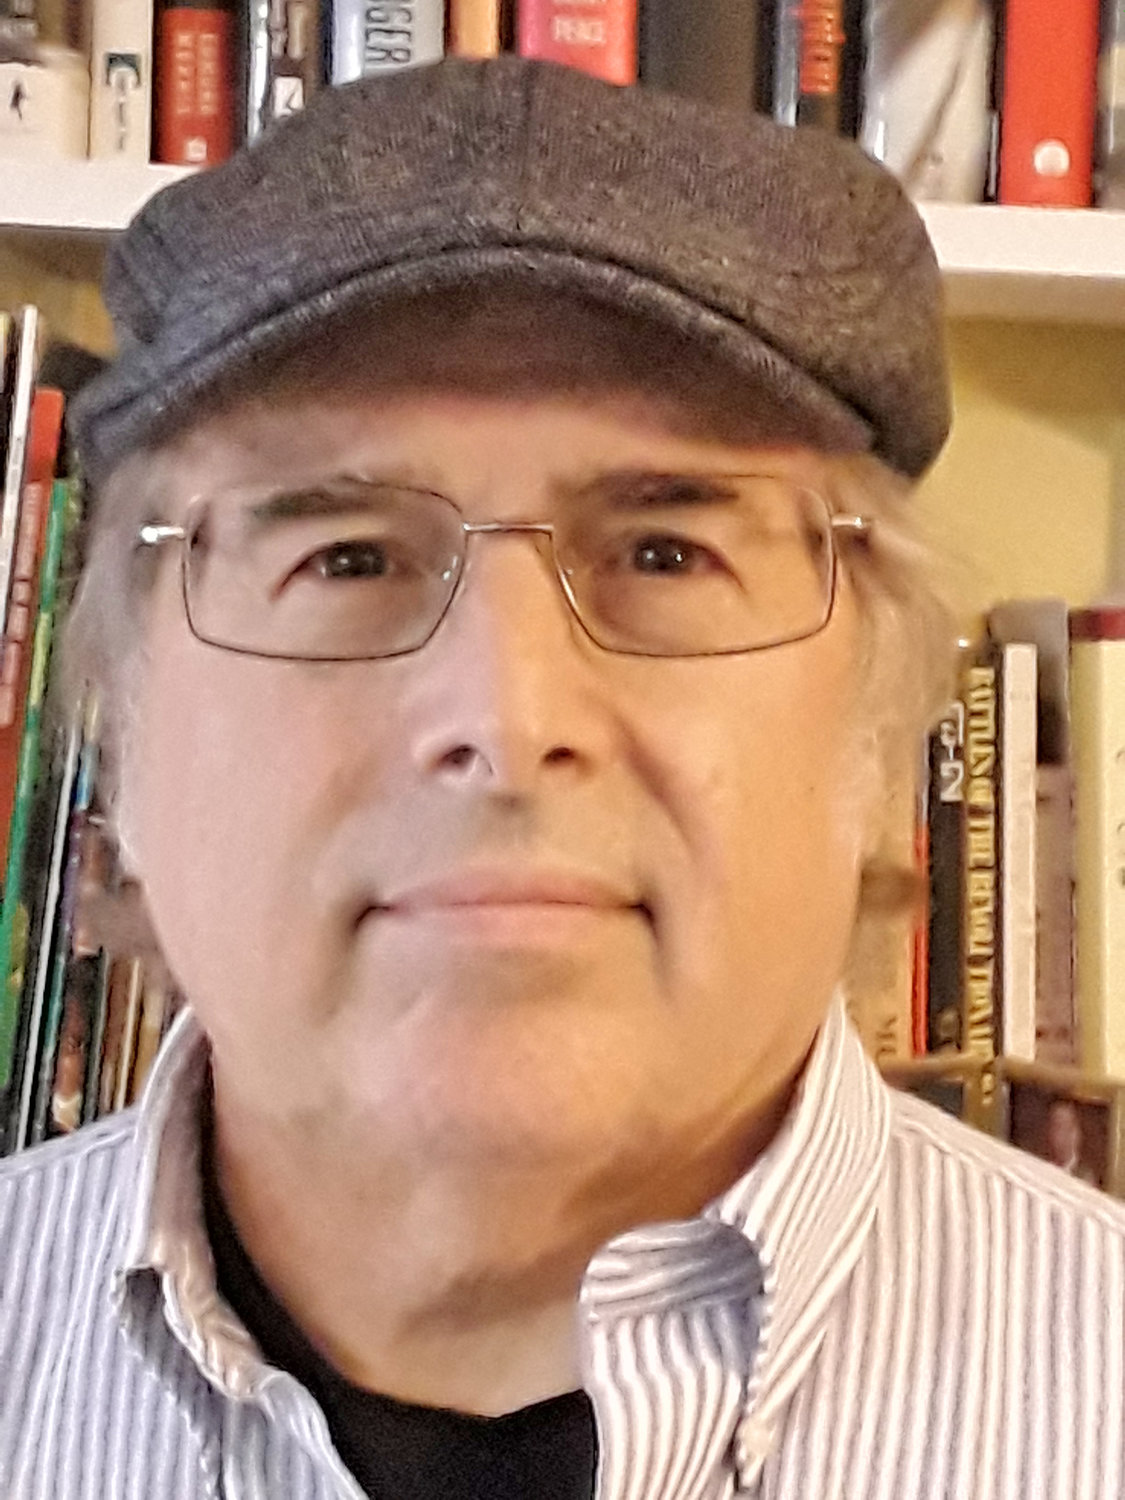 Author David R. Ossont